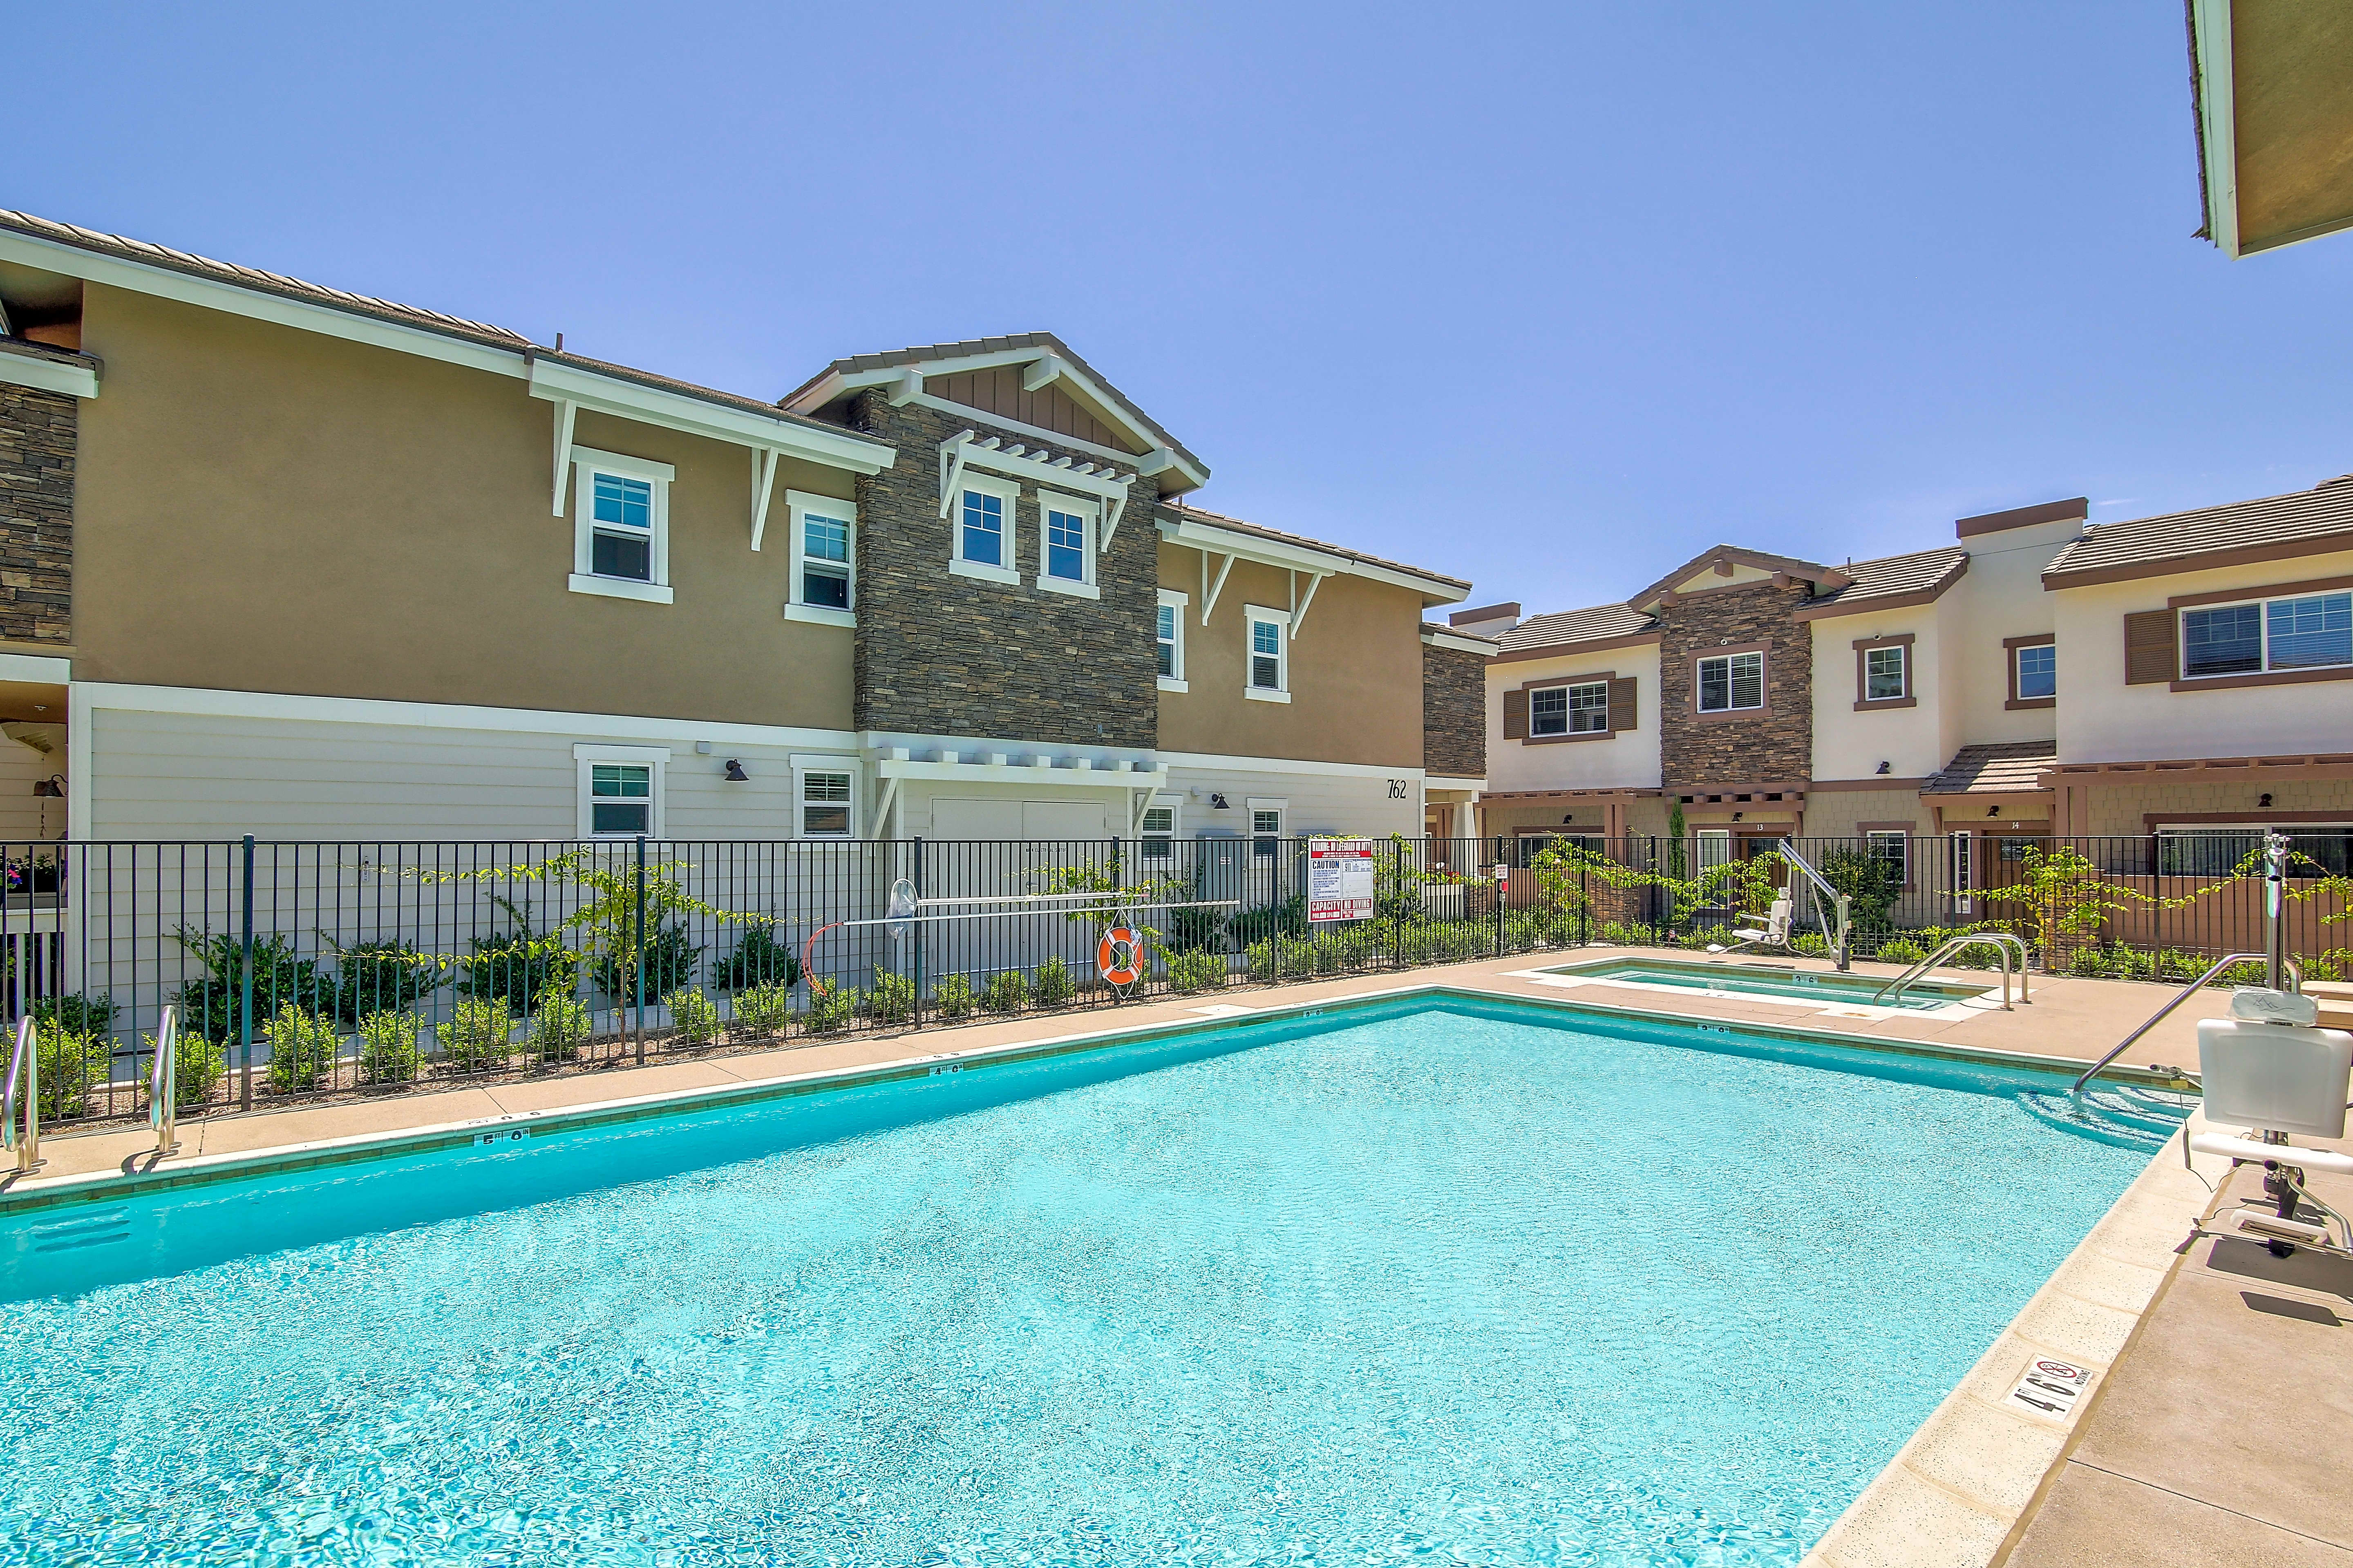 Apartments Near Palomar Coastal Living at San Marcos 55+ for Palomar College Students in San Marcos, CA